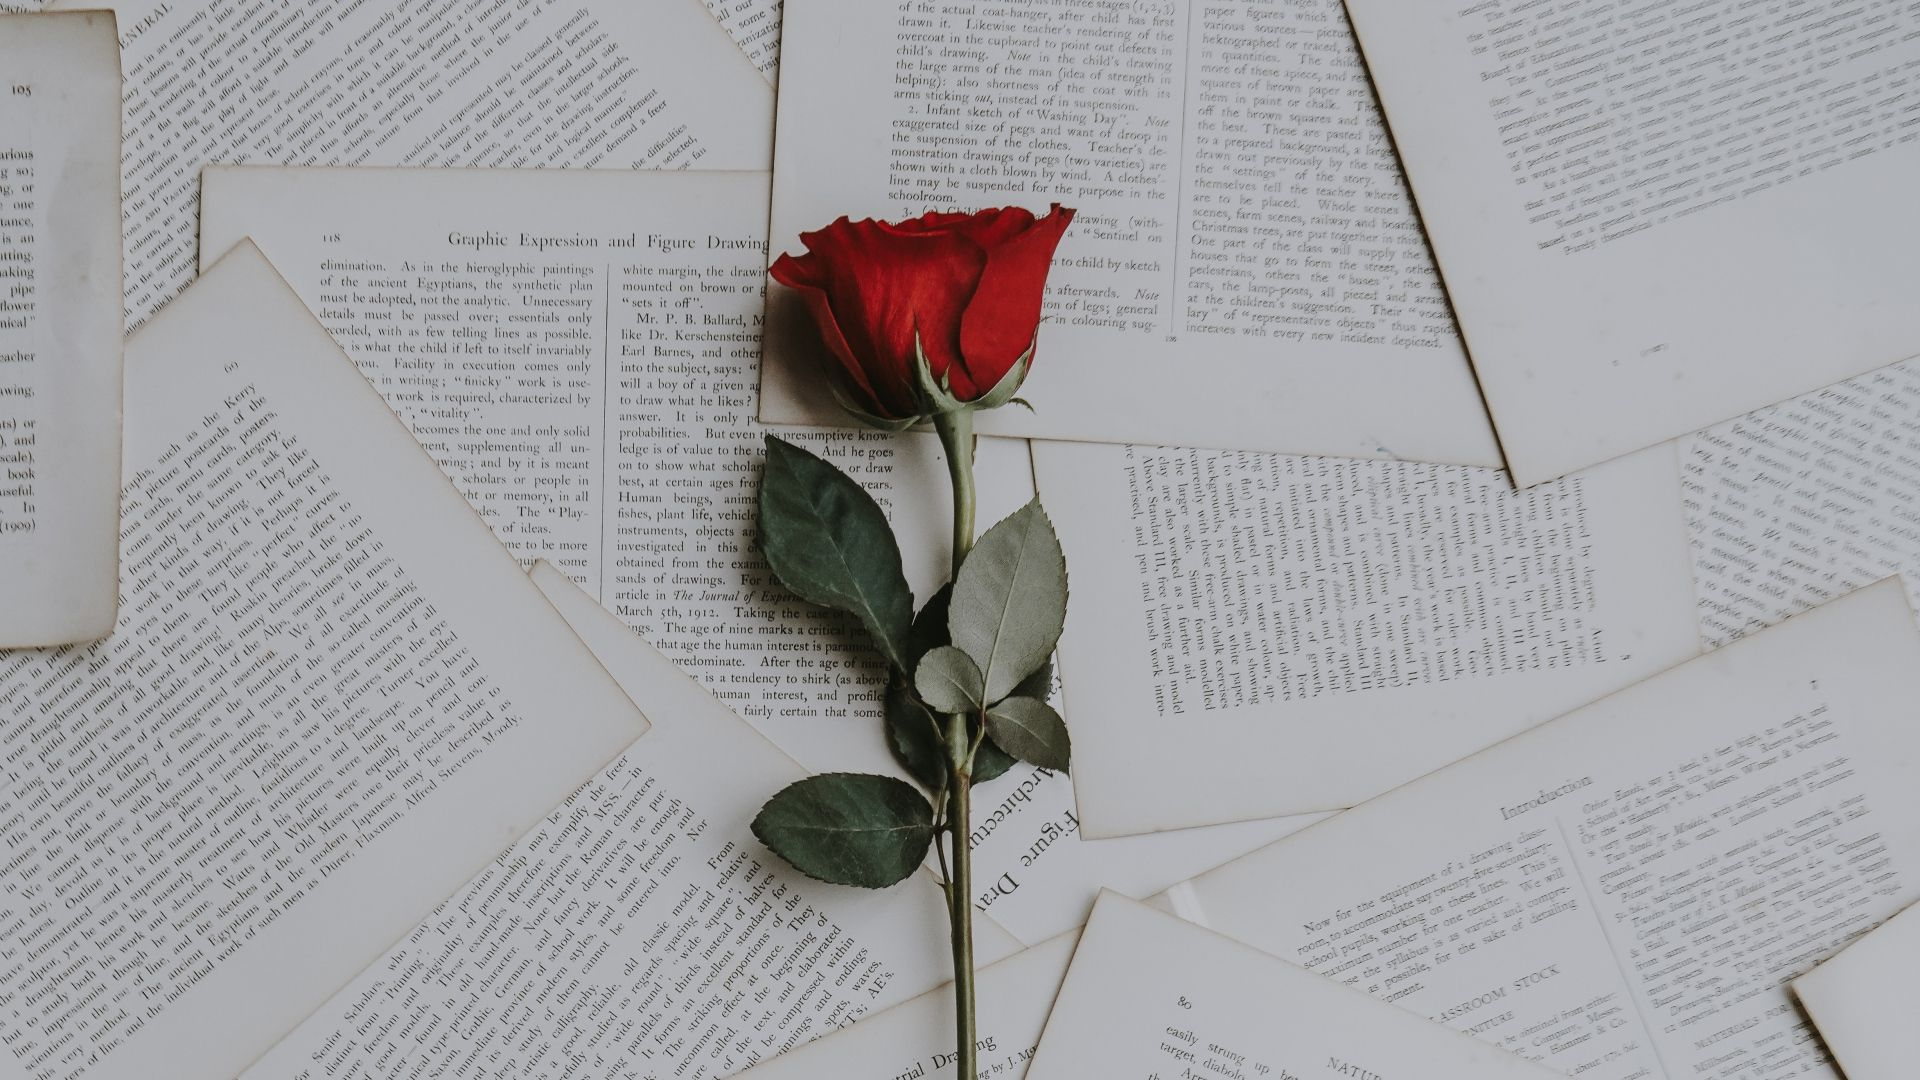 1920x1080 Wallpaper rose, books, texts | Papel de parede do ...